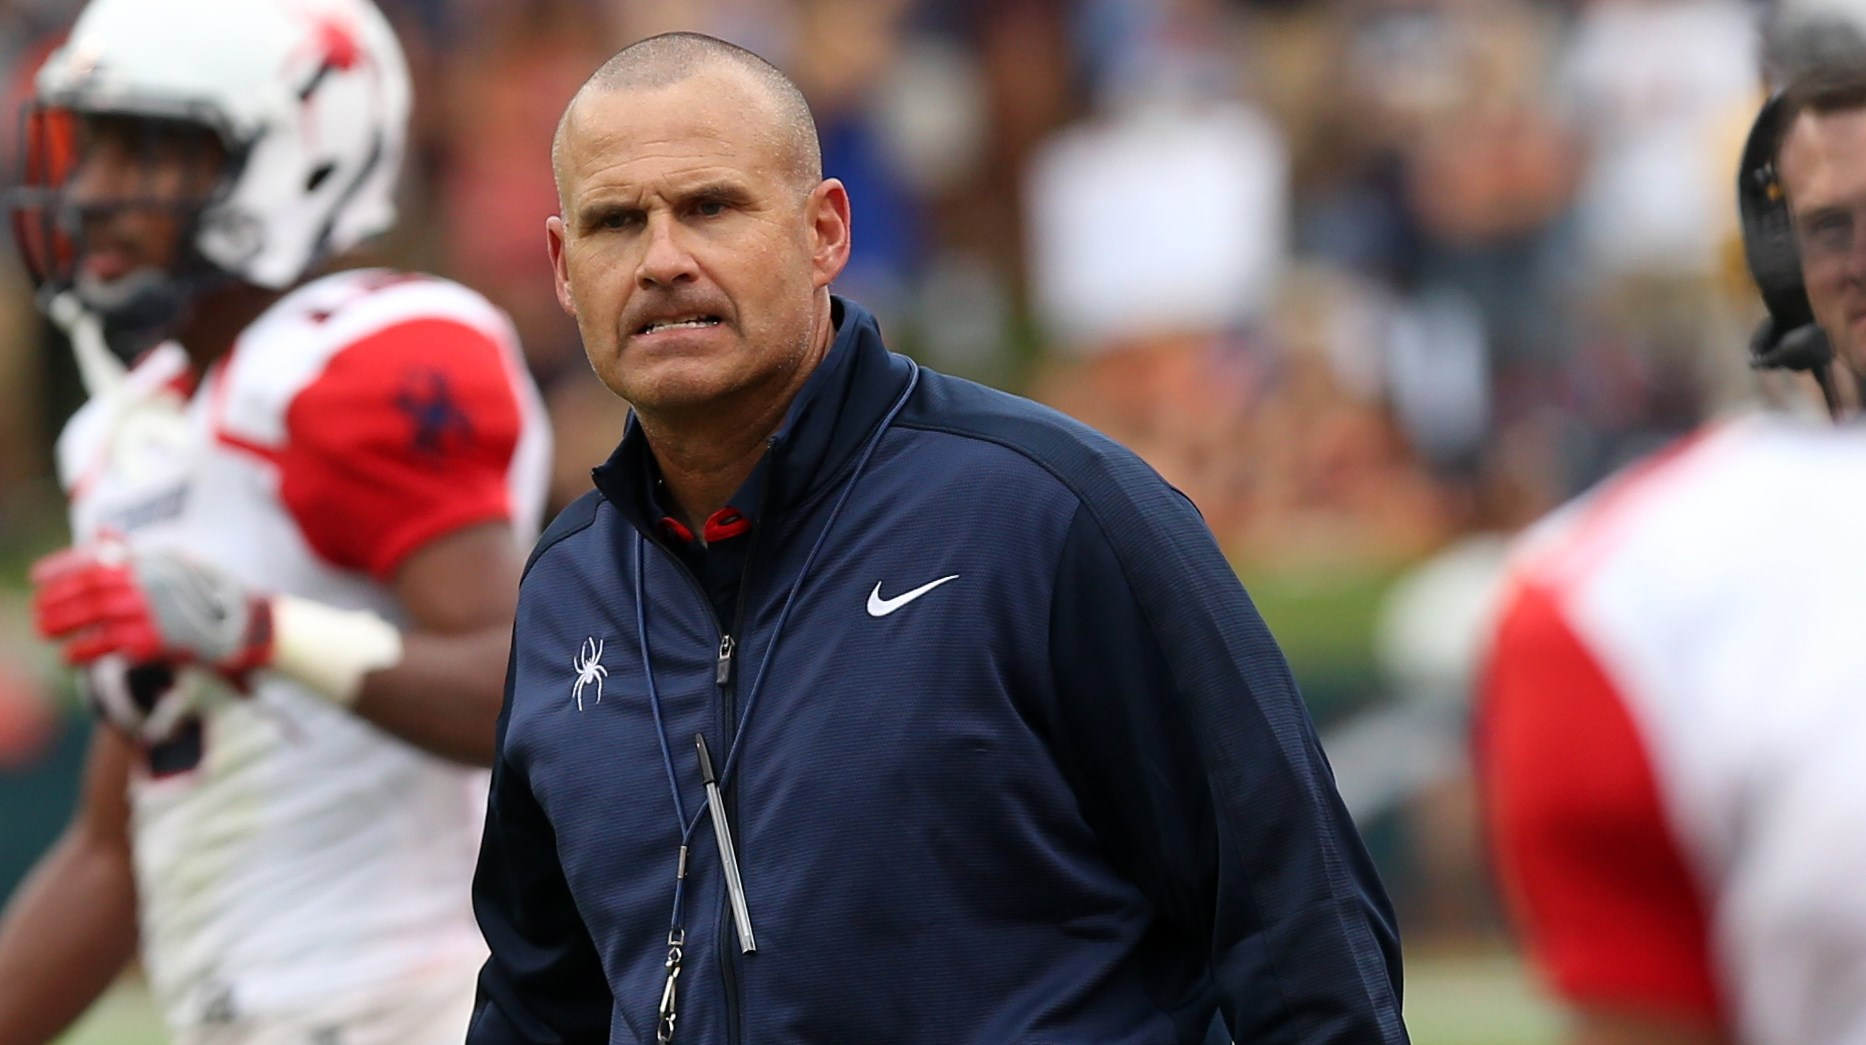 Richmond head coach Danny Rocco reacts to a call during the first half of an NCAA football game against Virginia Saturday Sept. 3, 2016, in Charlottesville, Va. (AP Photo/Andrew Shurtleff)